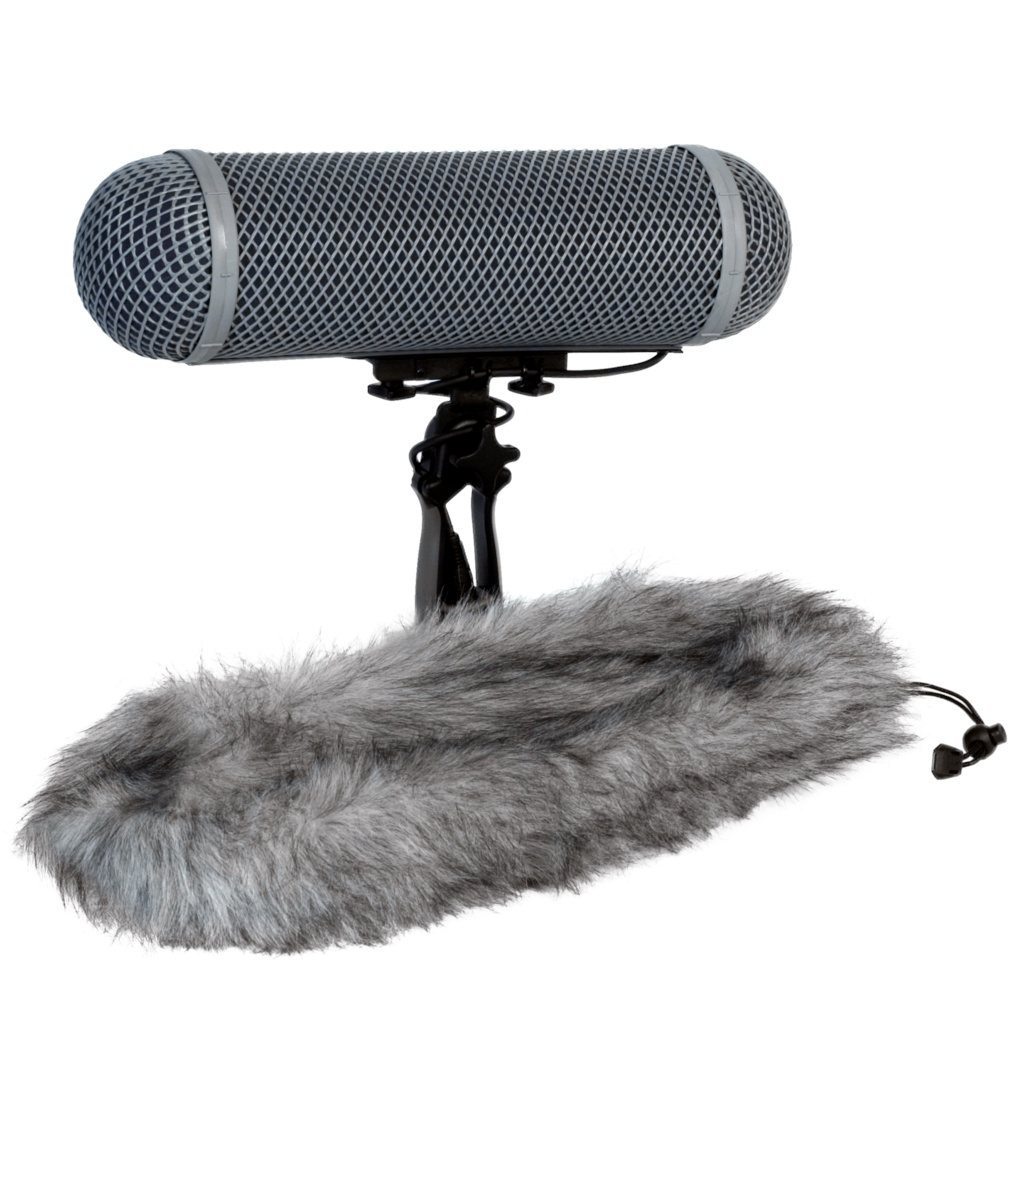 Shure A89SW-Kit Windshield Kit (Small)